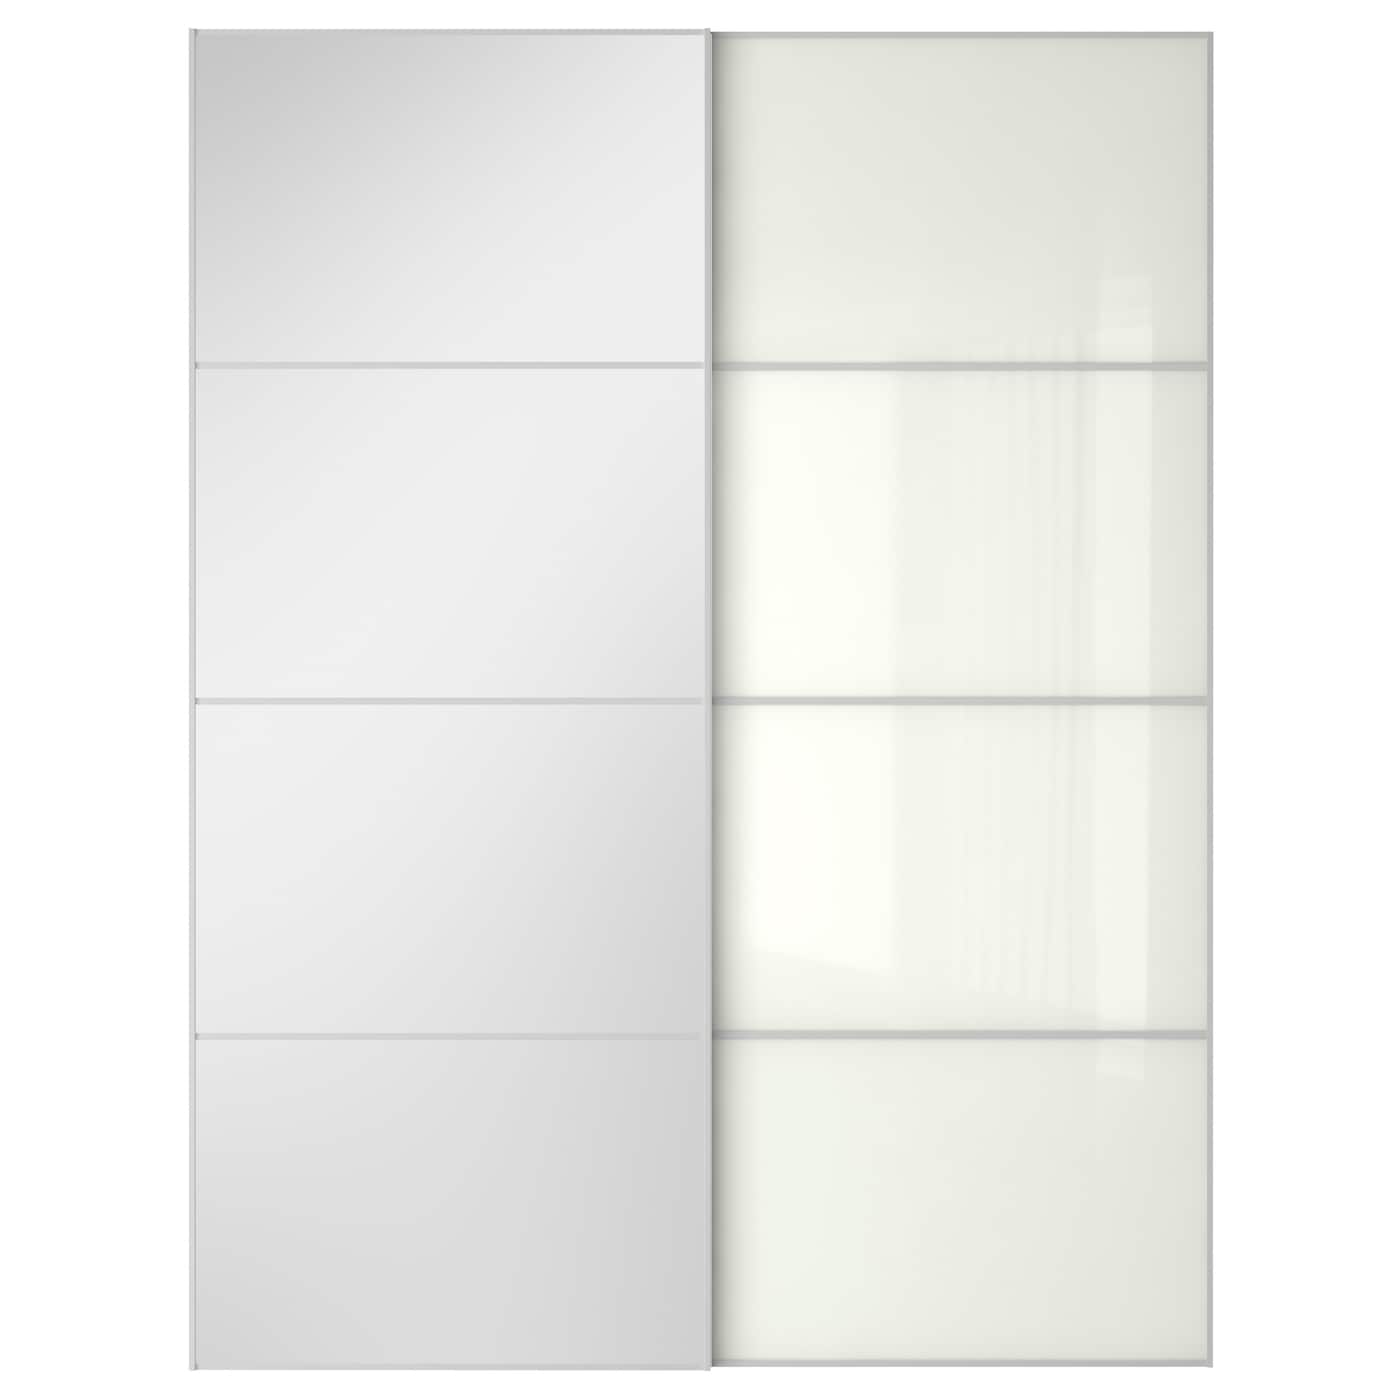 auli f rvik pair of sliding doors mirror glass white glass. Black Bedroom Furniture Sets. Home Design Ideas